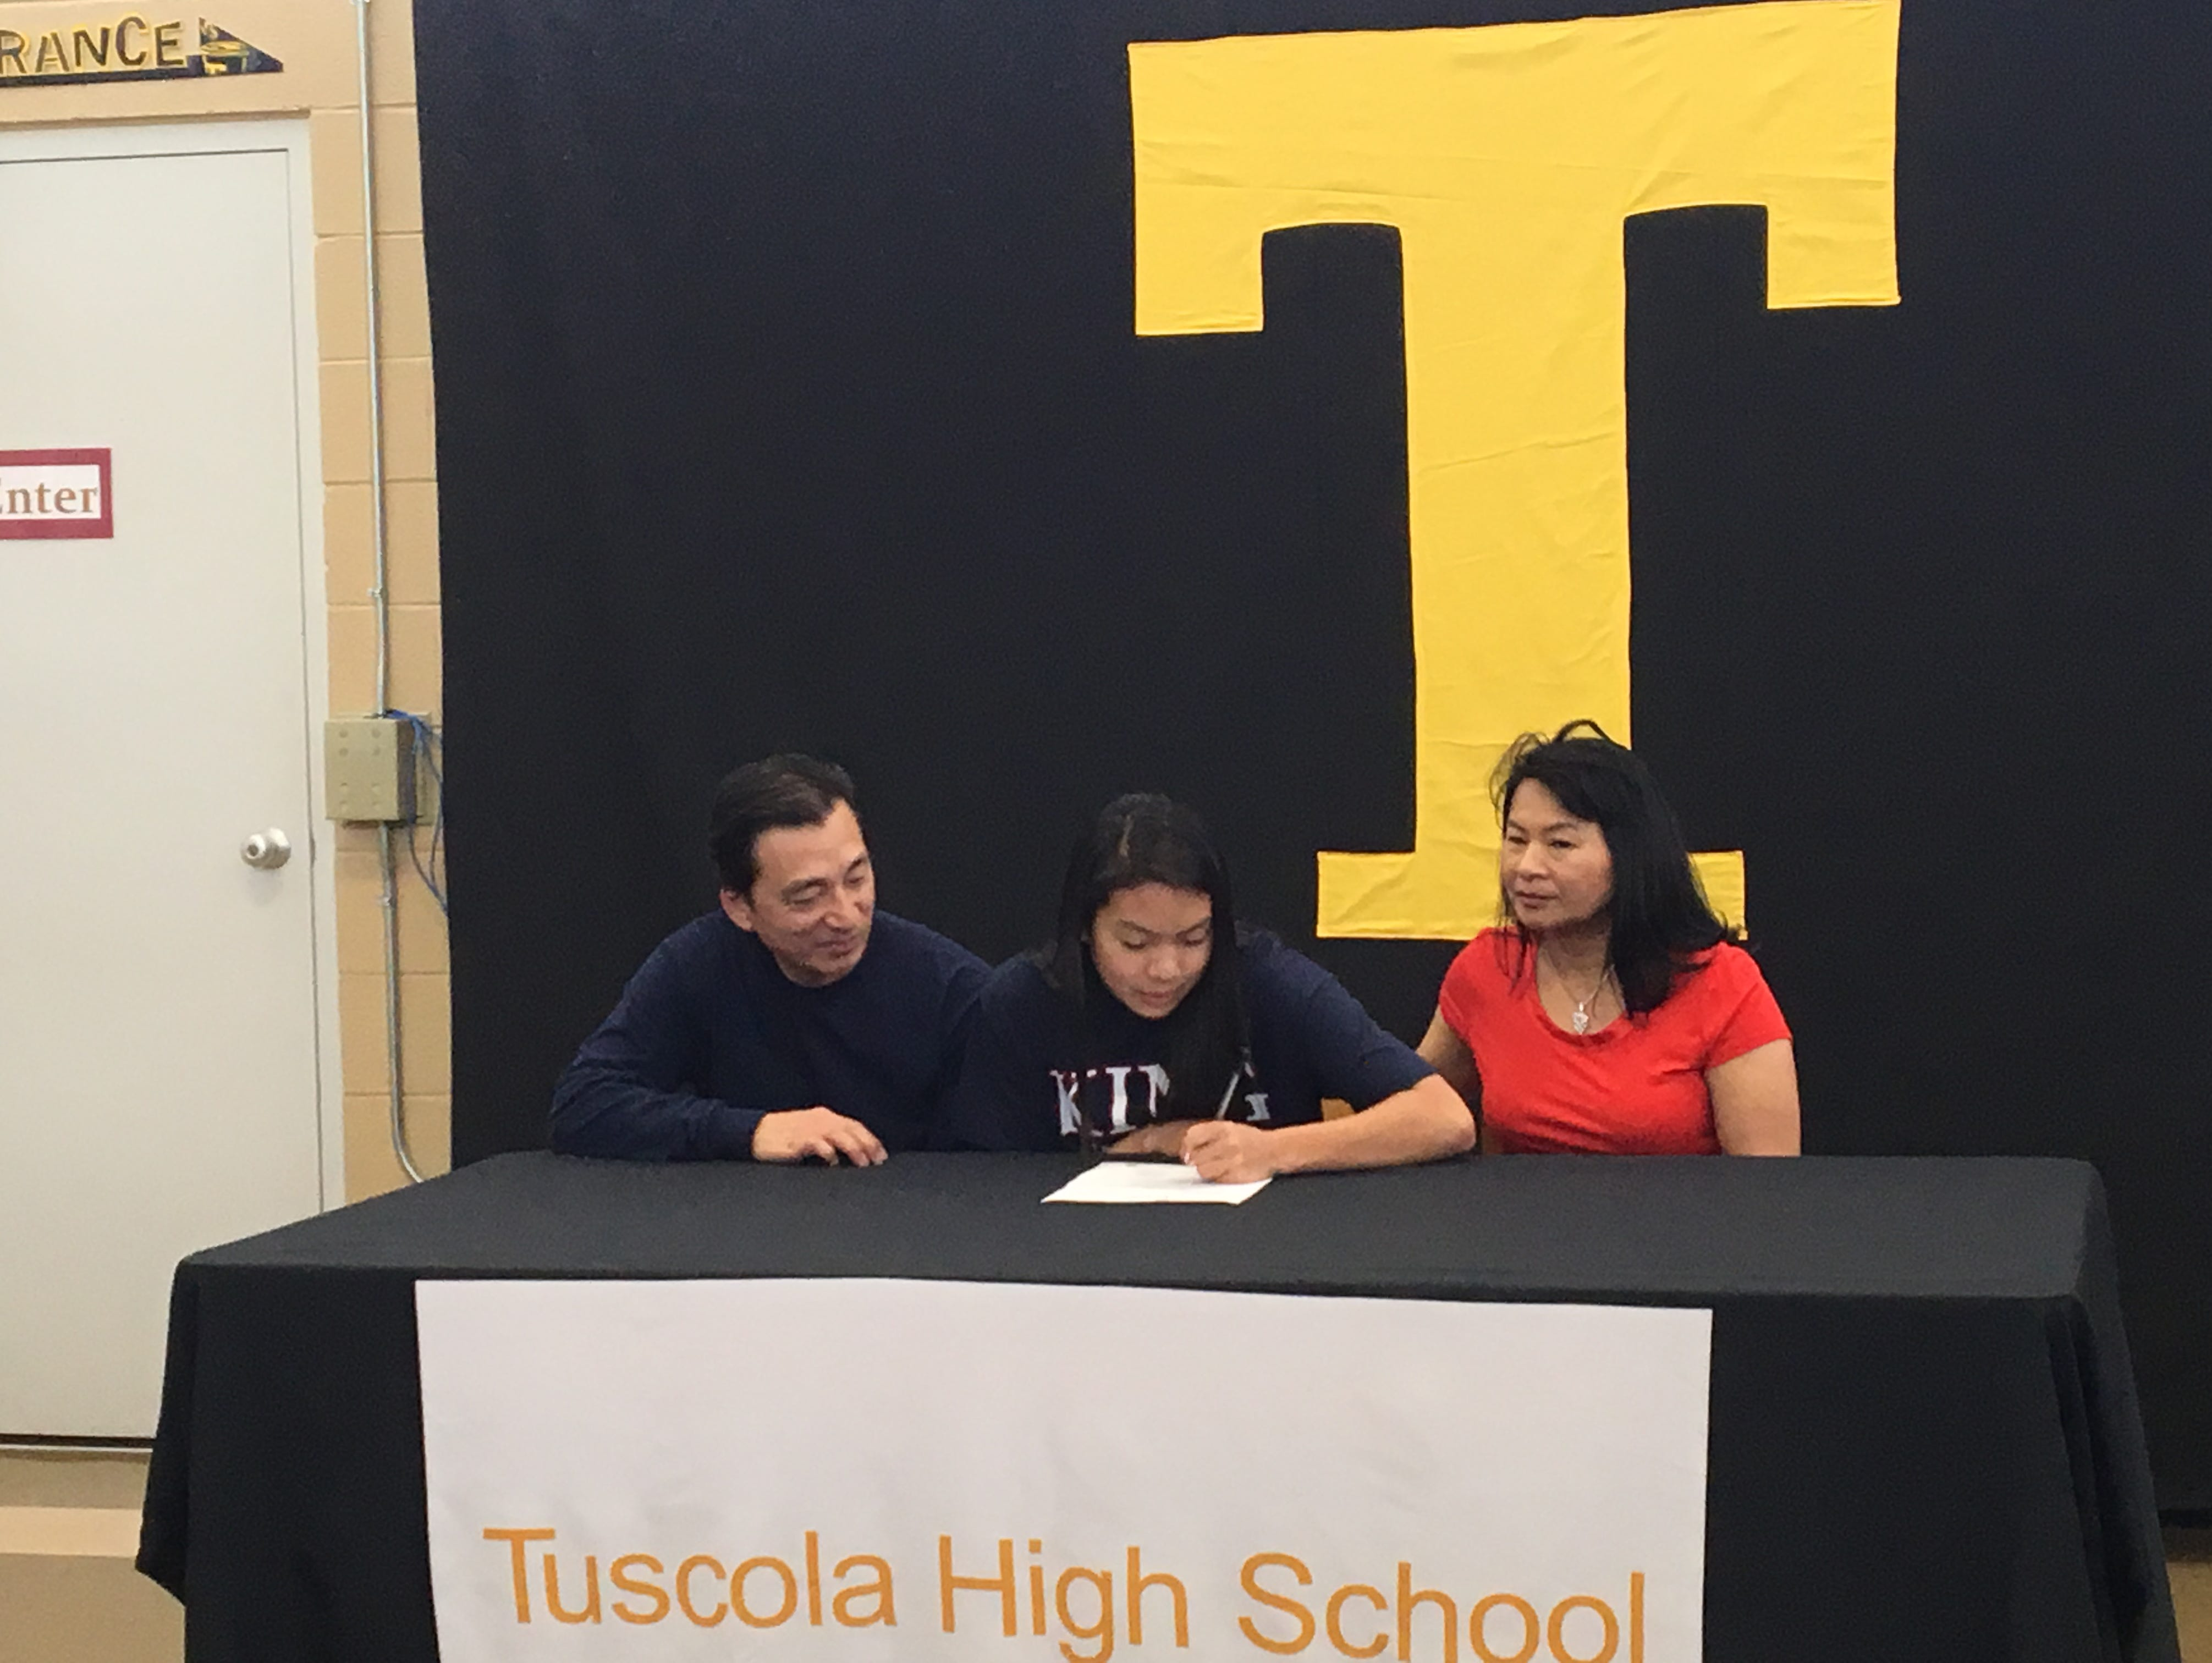 Tuscola senior Annie Ly has signed to swim in college for King (Tenn.).